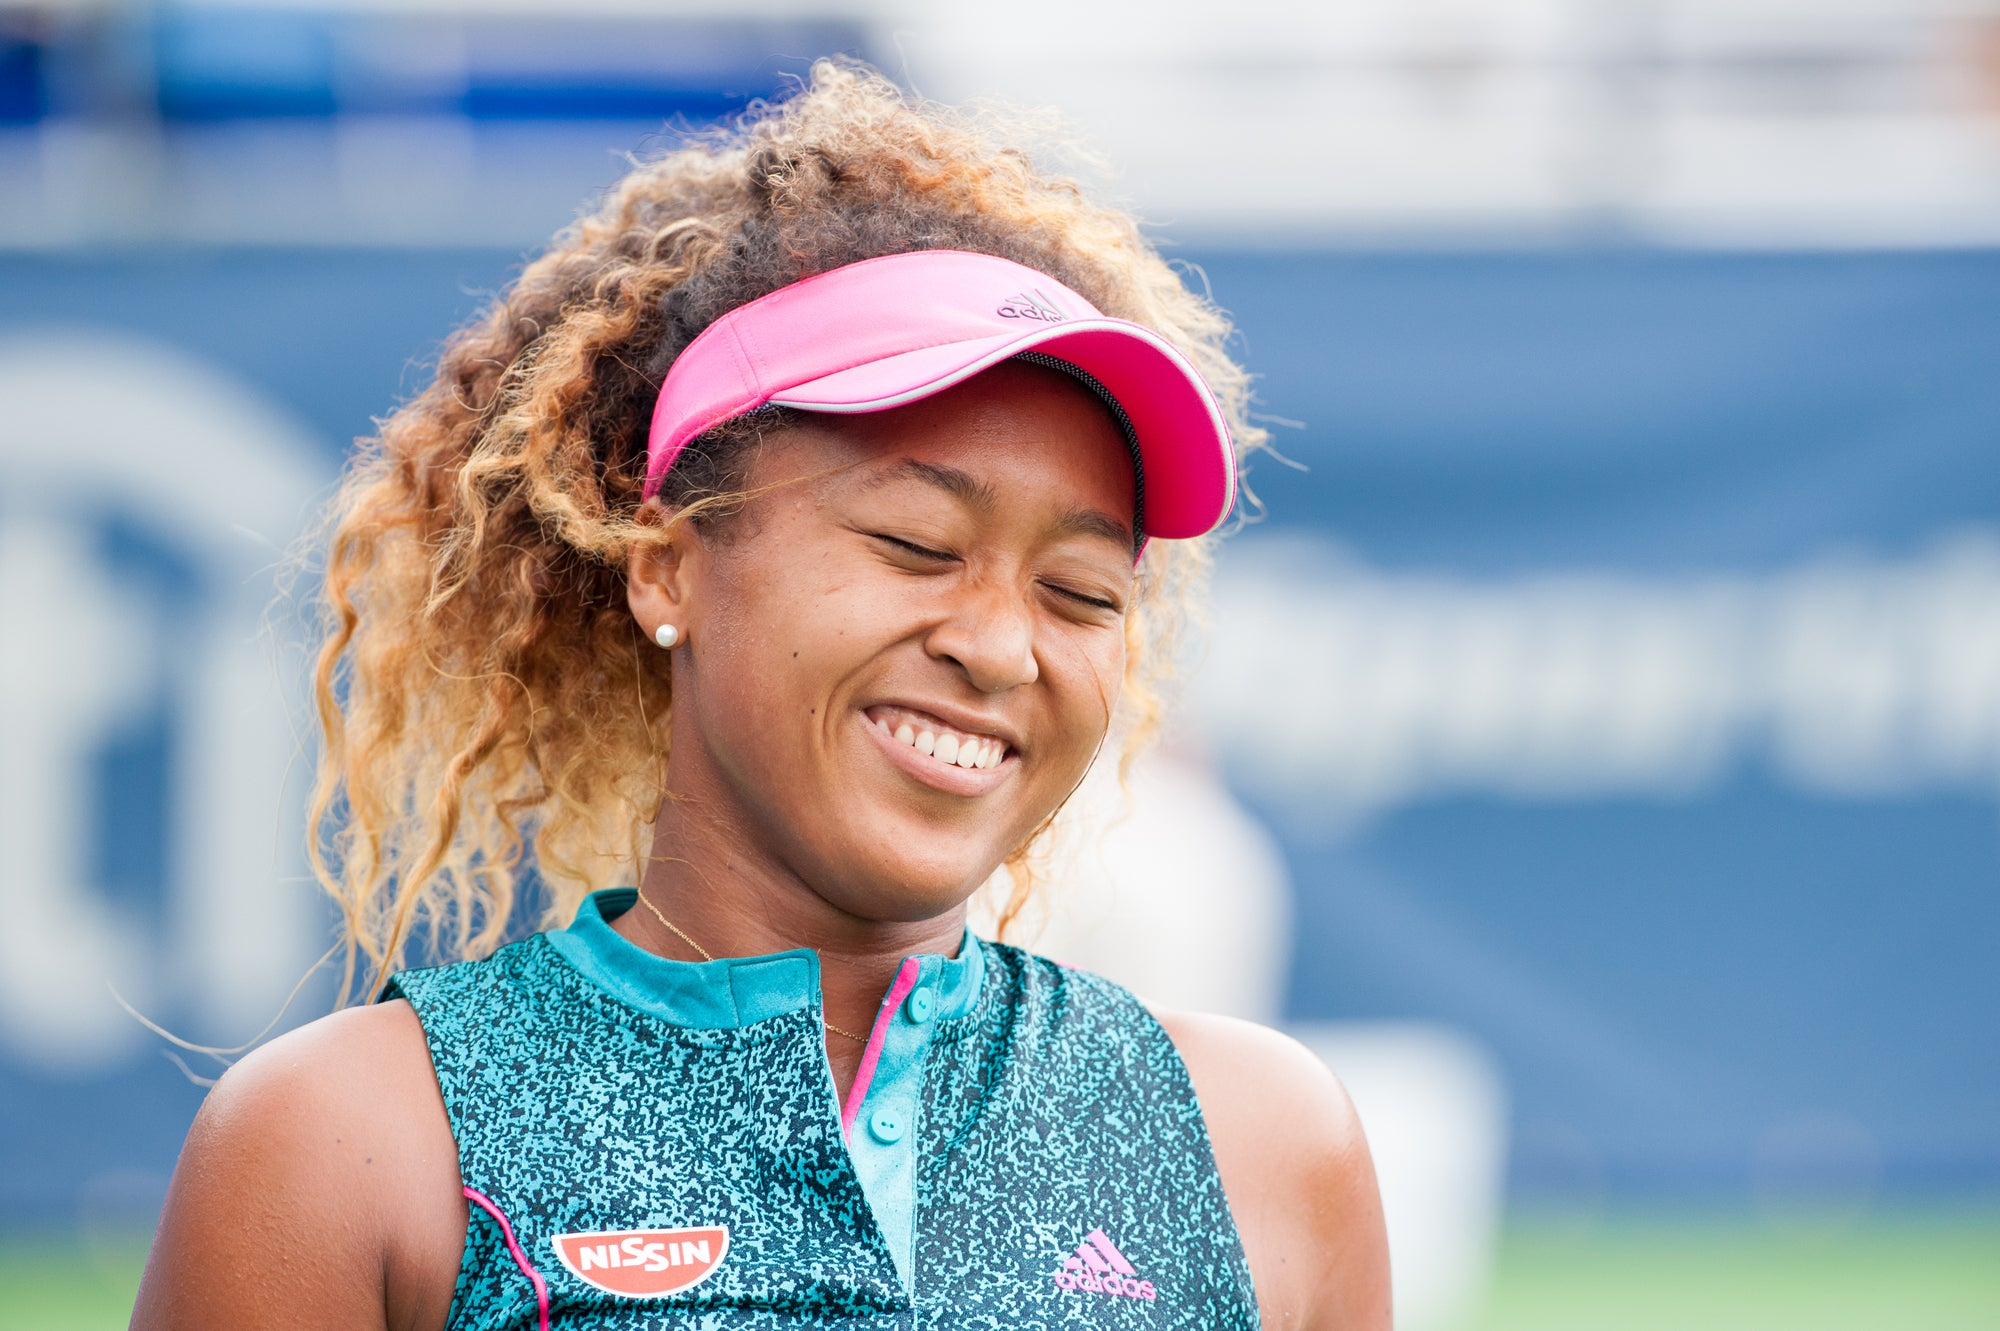 Naomi Osaka smiling on the tennis court in a pink visor